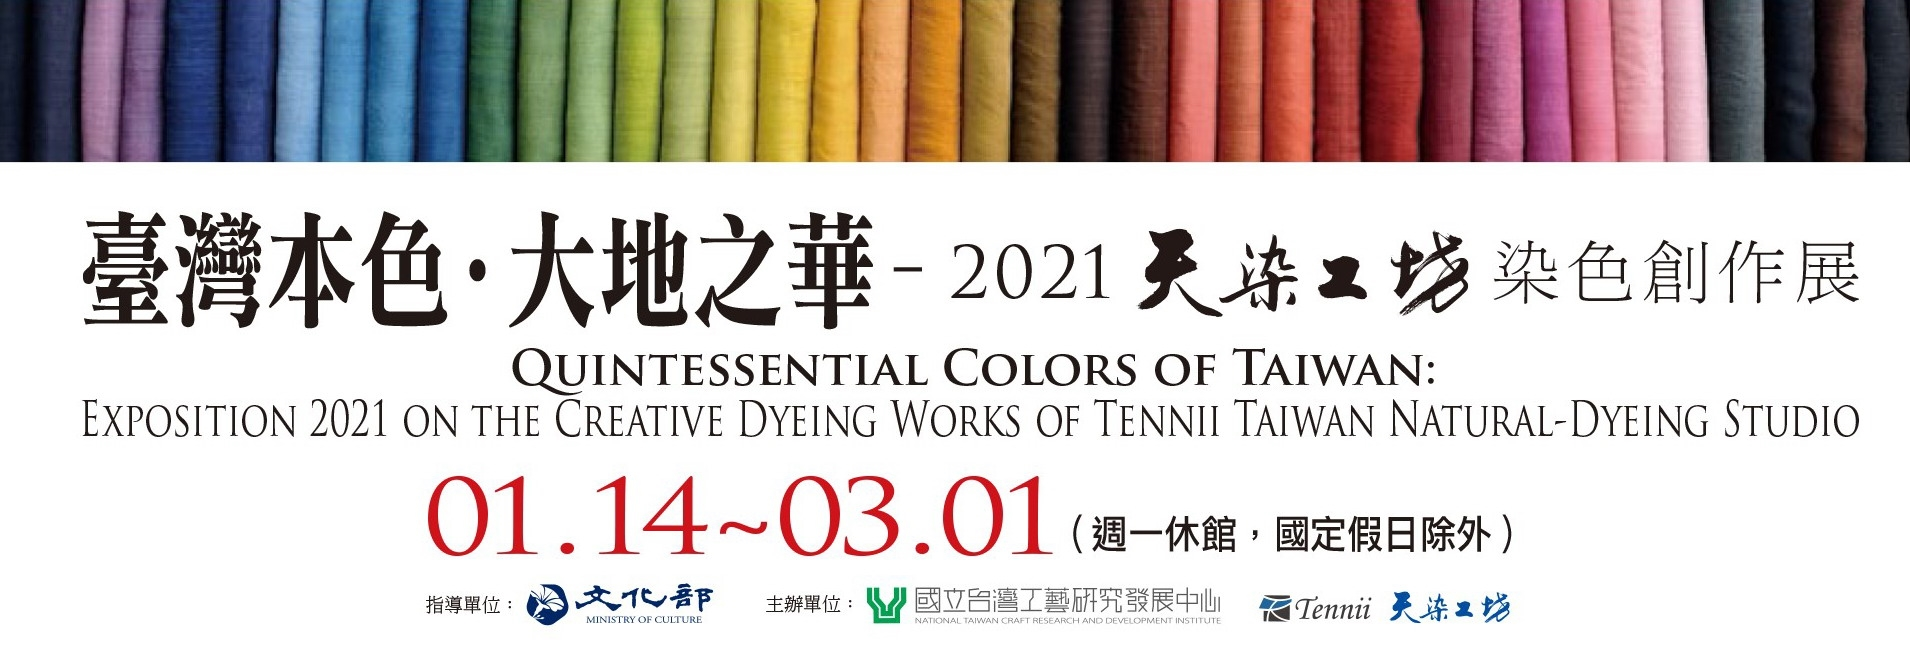 Quintessential Colors of Taiwan: Exposition 2021 on the Creative Dyeing Works of Tennii Taiwan Natural-Dyeing Studio「open a new window」